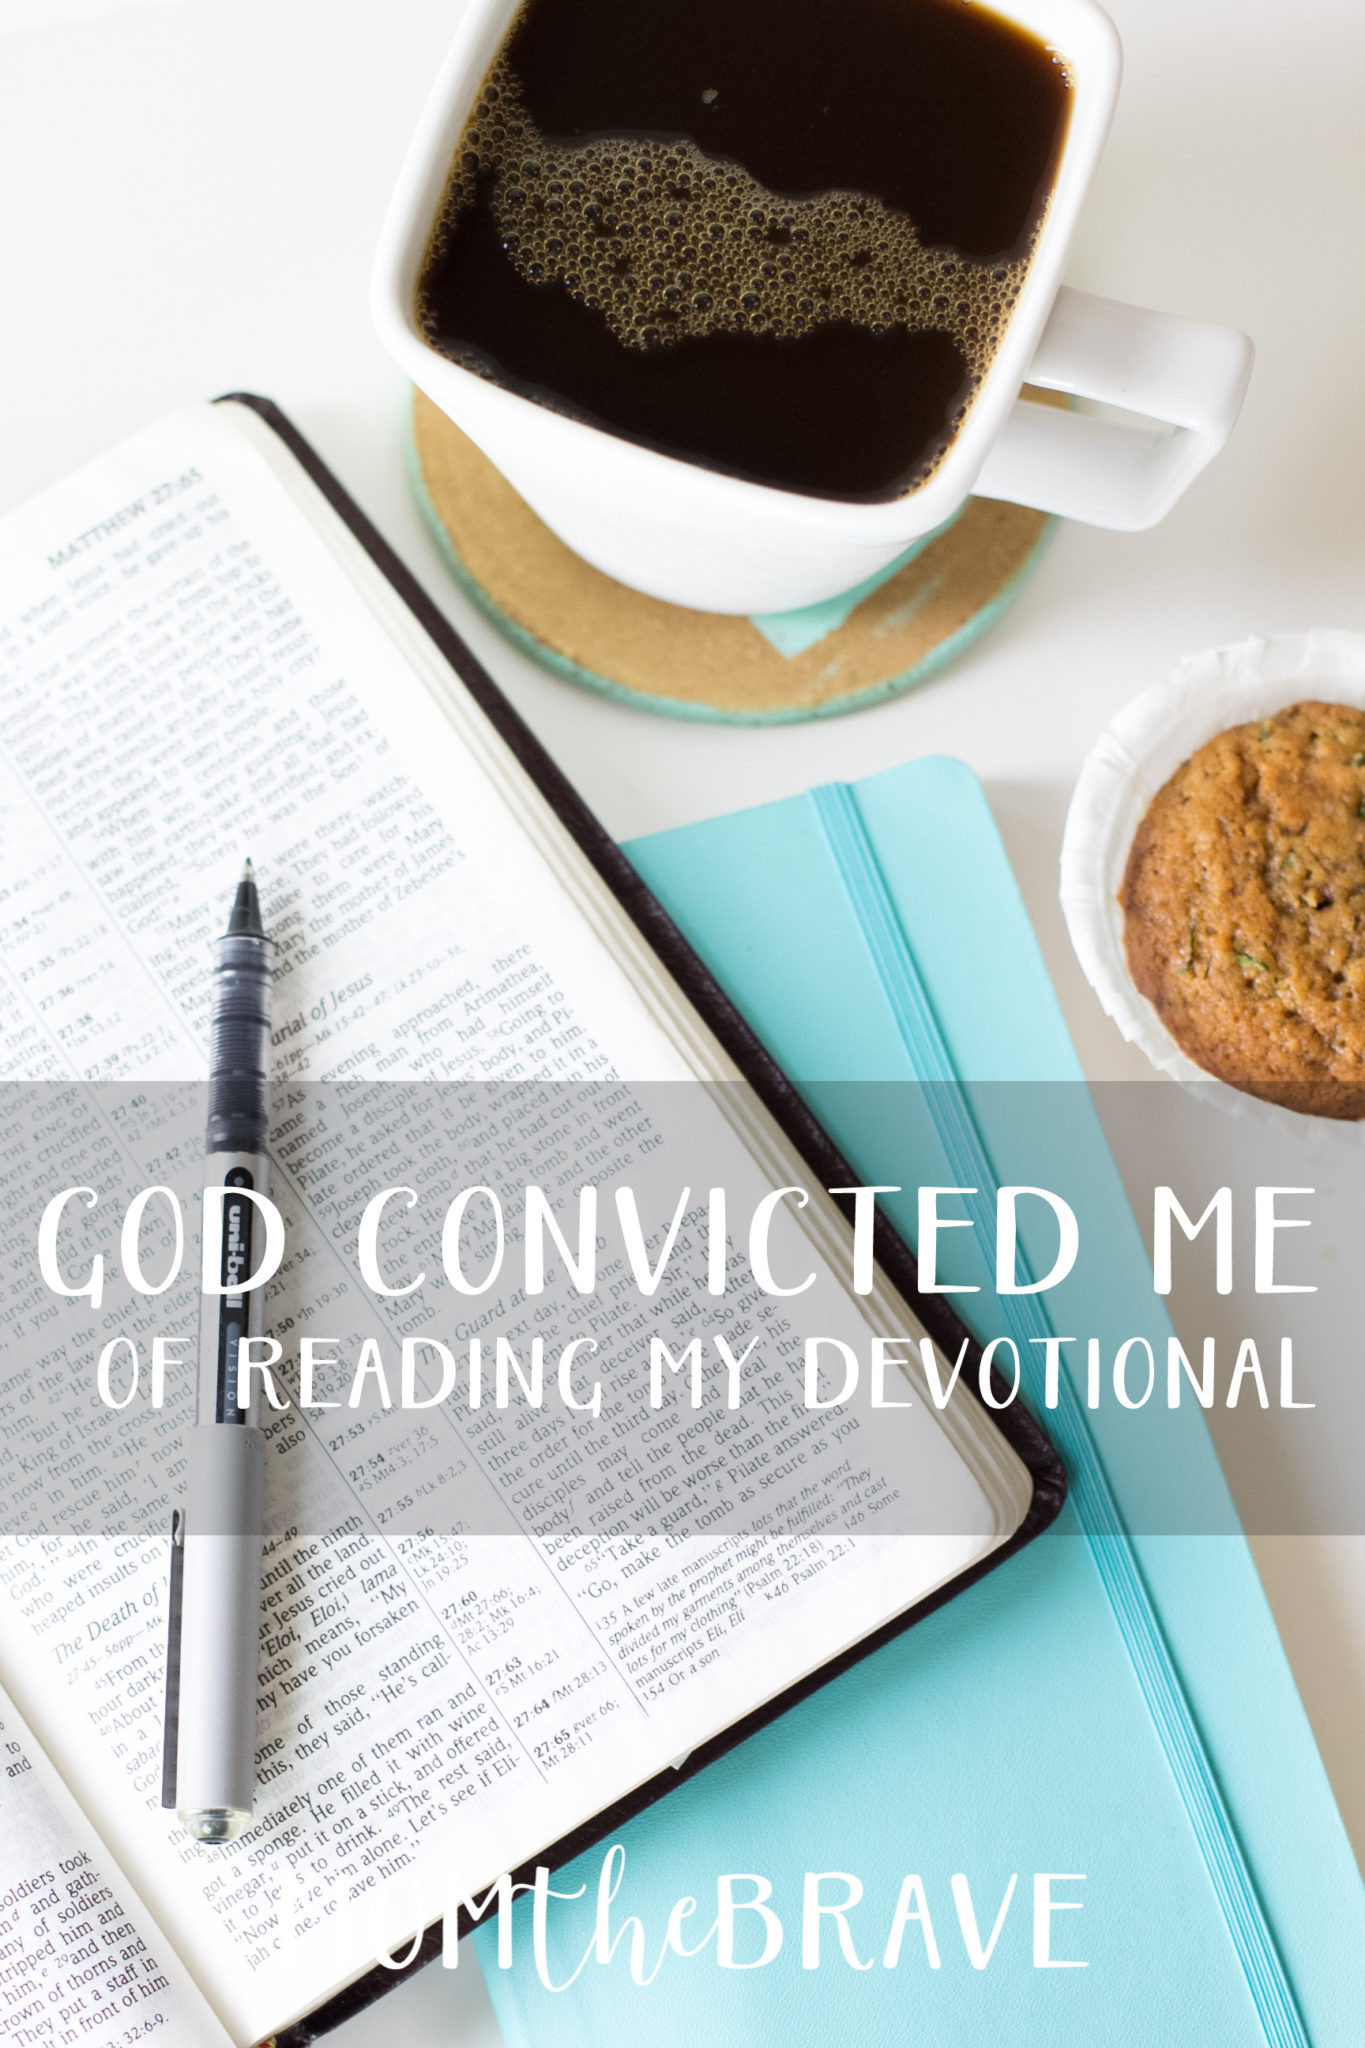 God Convicted Me of Reading My Devotional